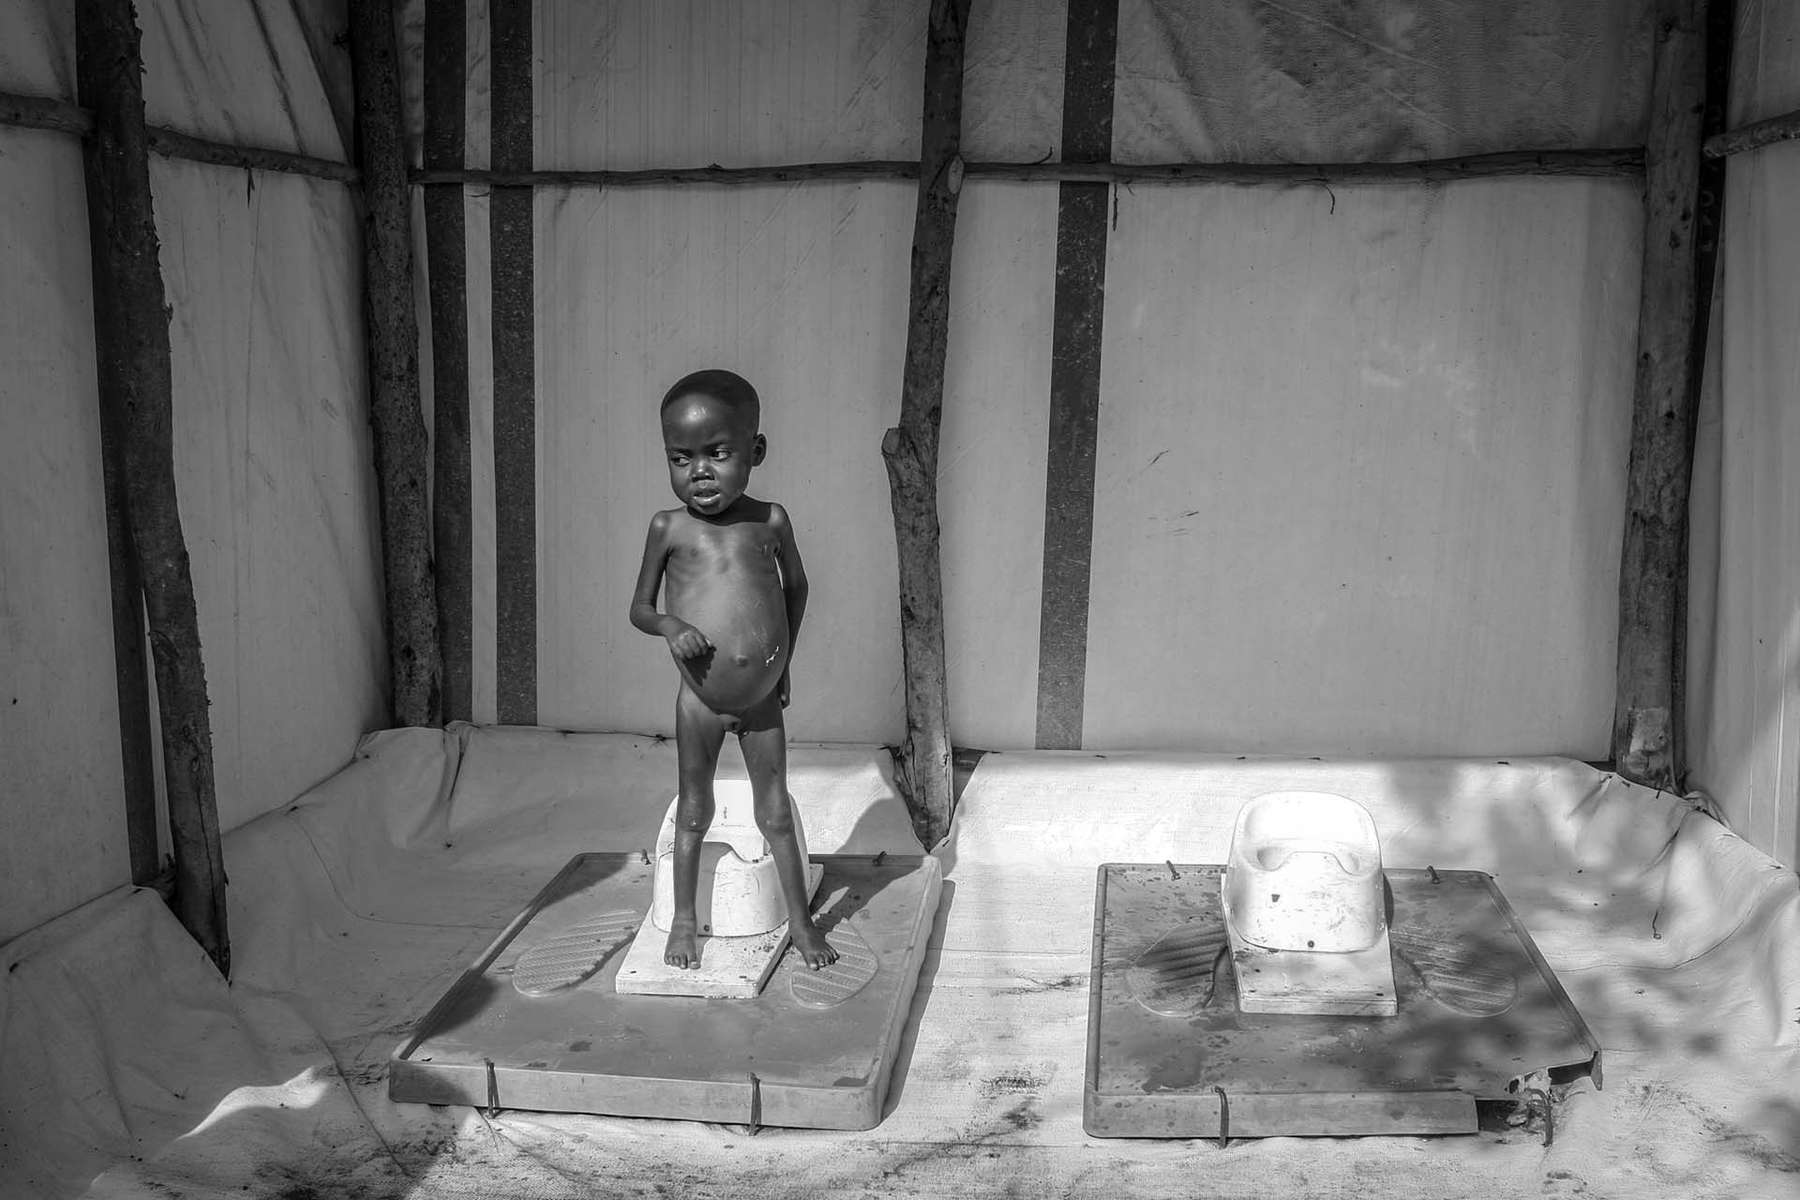 Malnourished child cries for her mother at MSF (Doctors without Borders) hospital in Bunia .